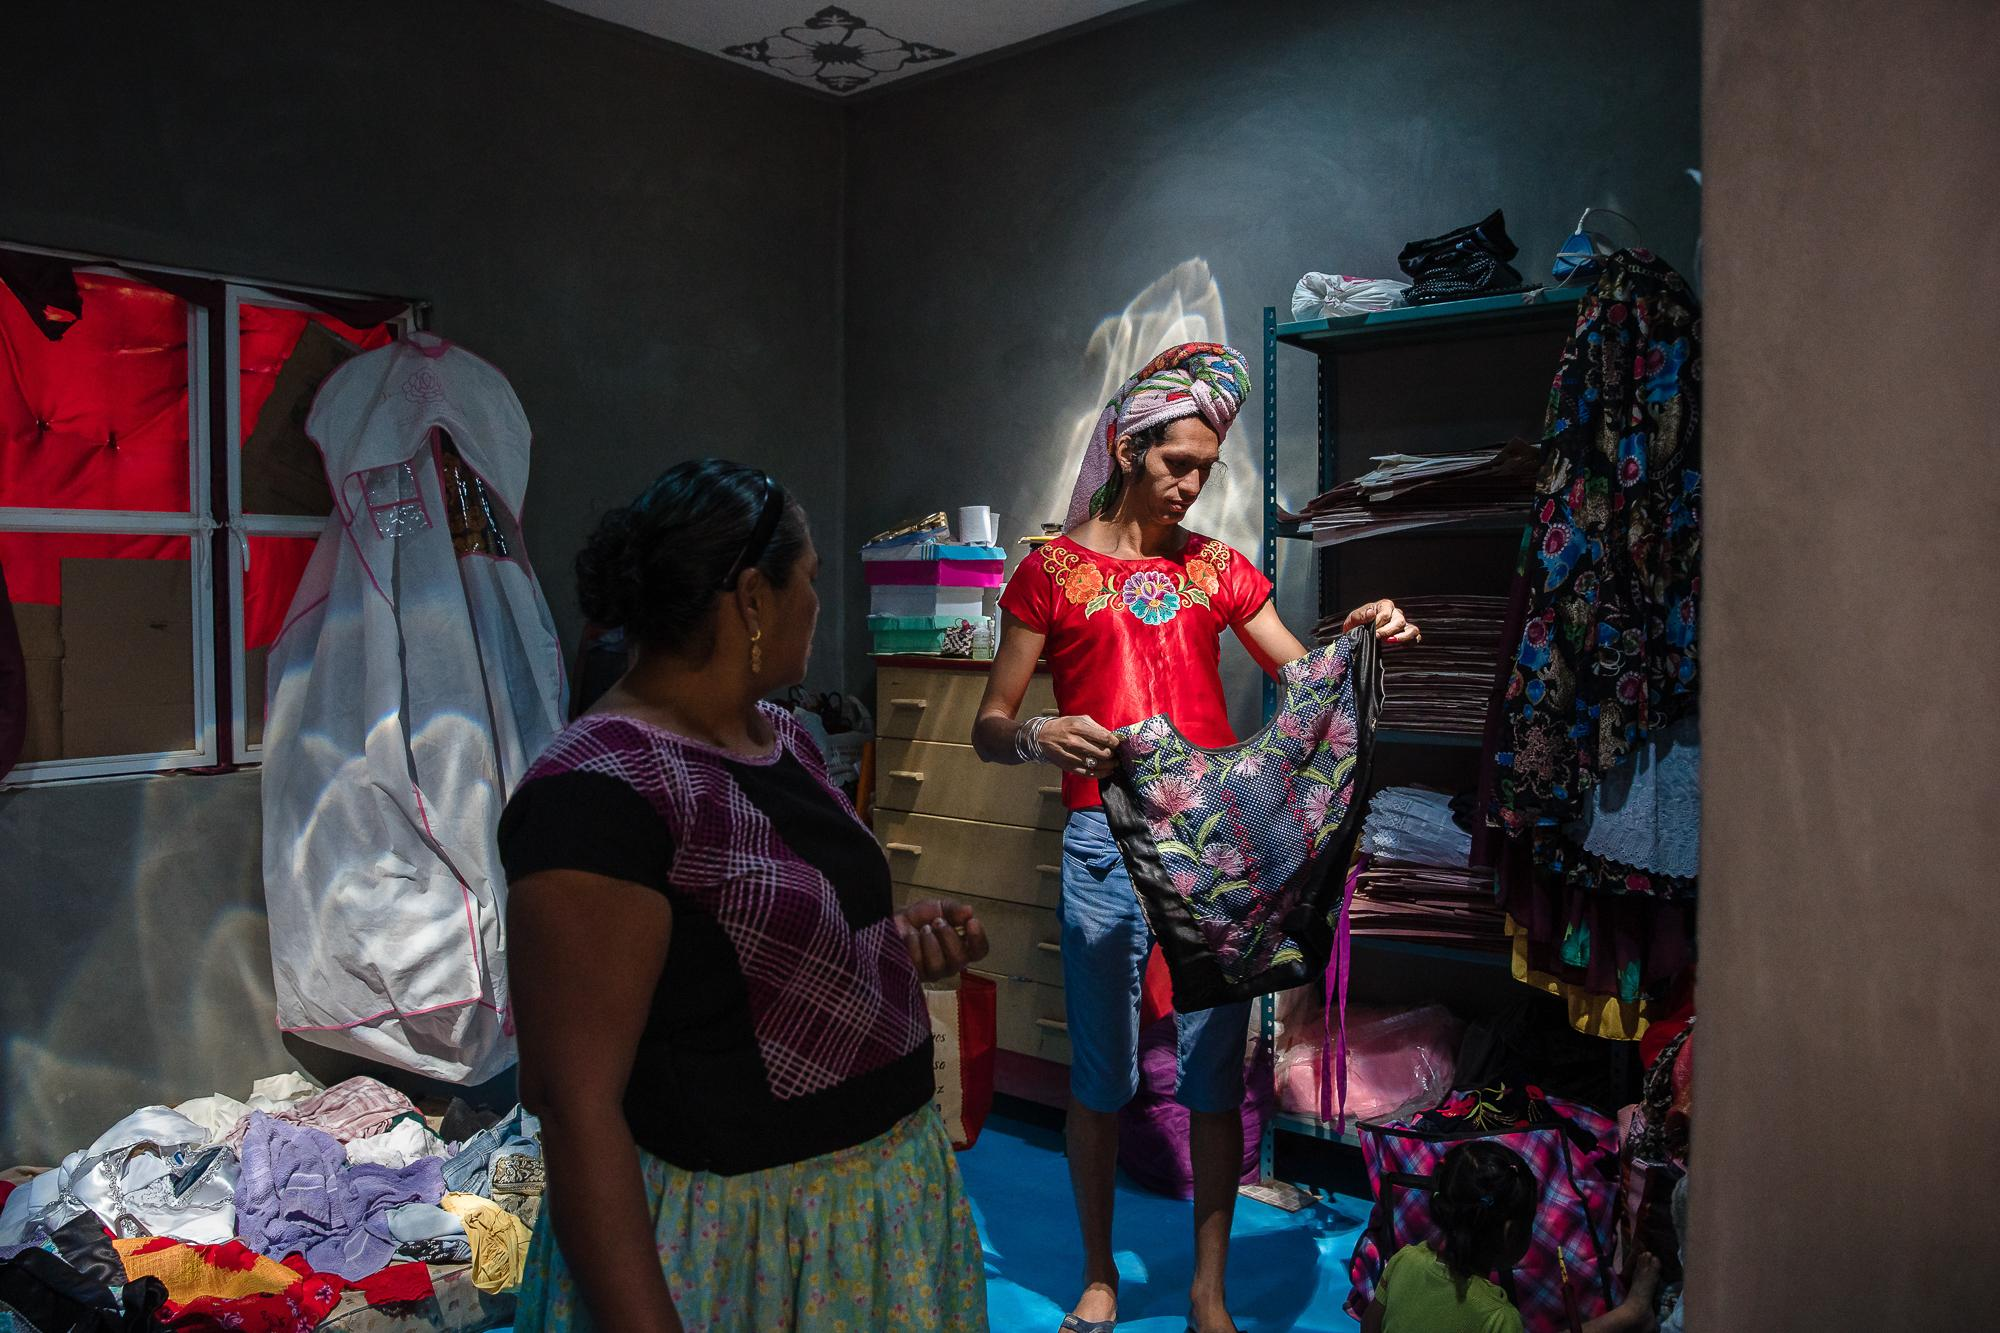 Estrella Vasquez a weaver and designer is the first transgender muxe woman to appear on the cover of Vogue in December of 2019, looks for an outfit while her mother checks in on her in their home in Juchitán de Zaragoza an indigenous town in the southeast of the Mexican state of Oaxaca.